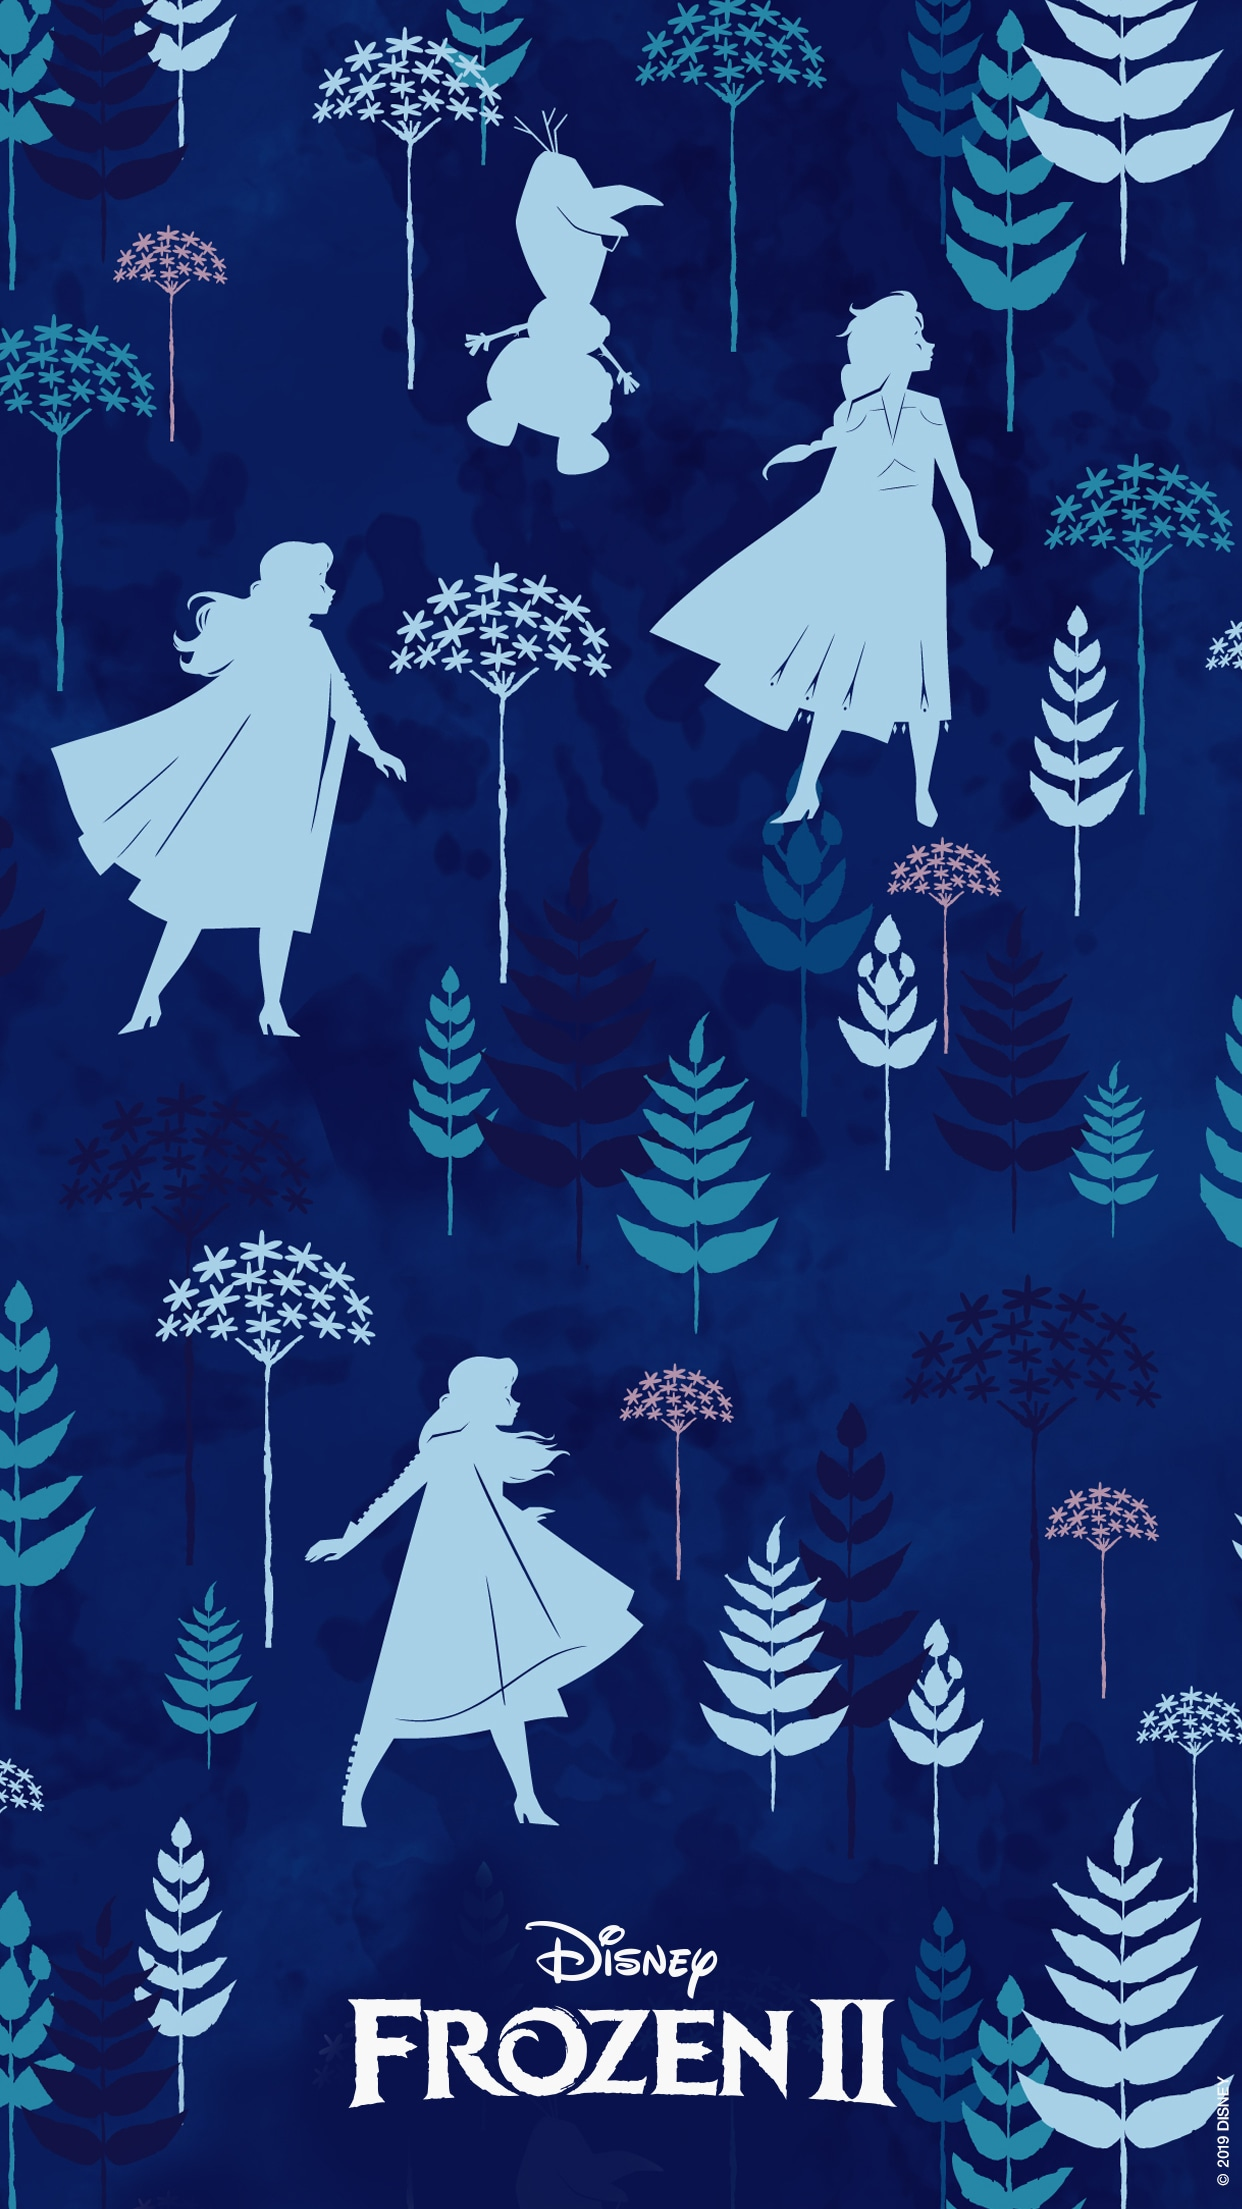 These Disneys Frozen 2 Mobile Wallpapers Will Put You In A